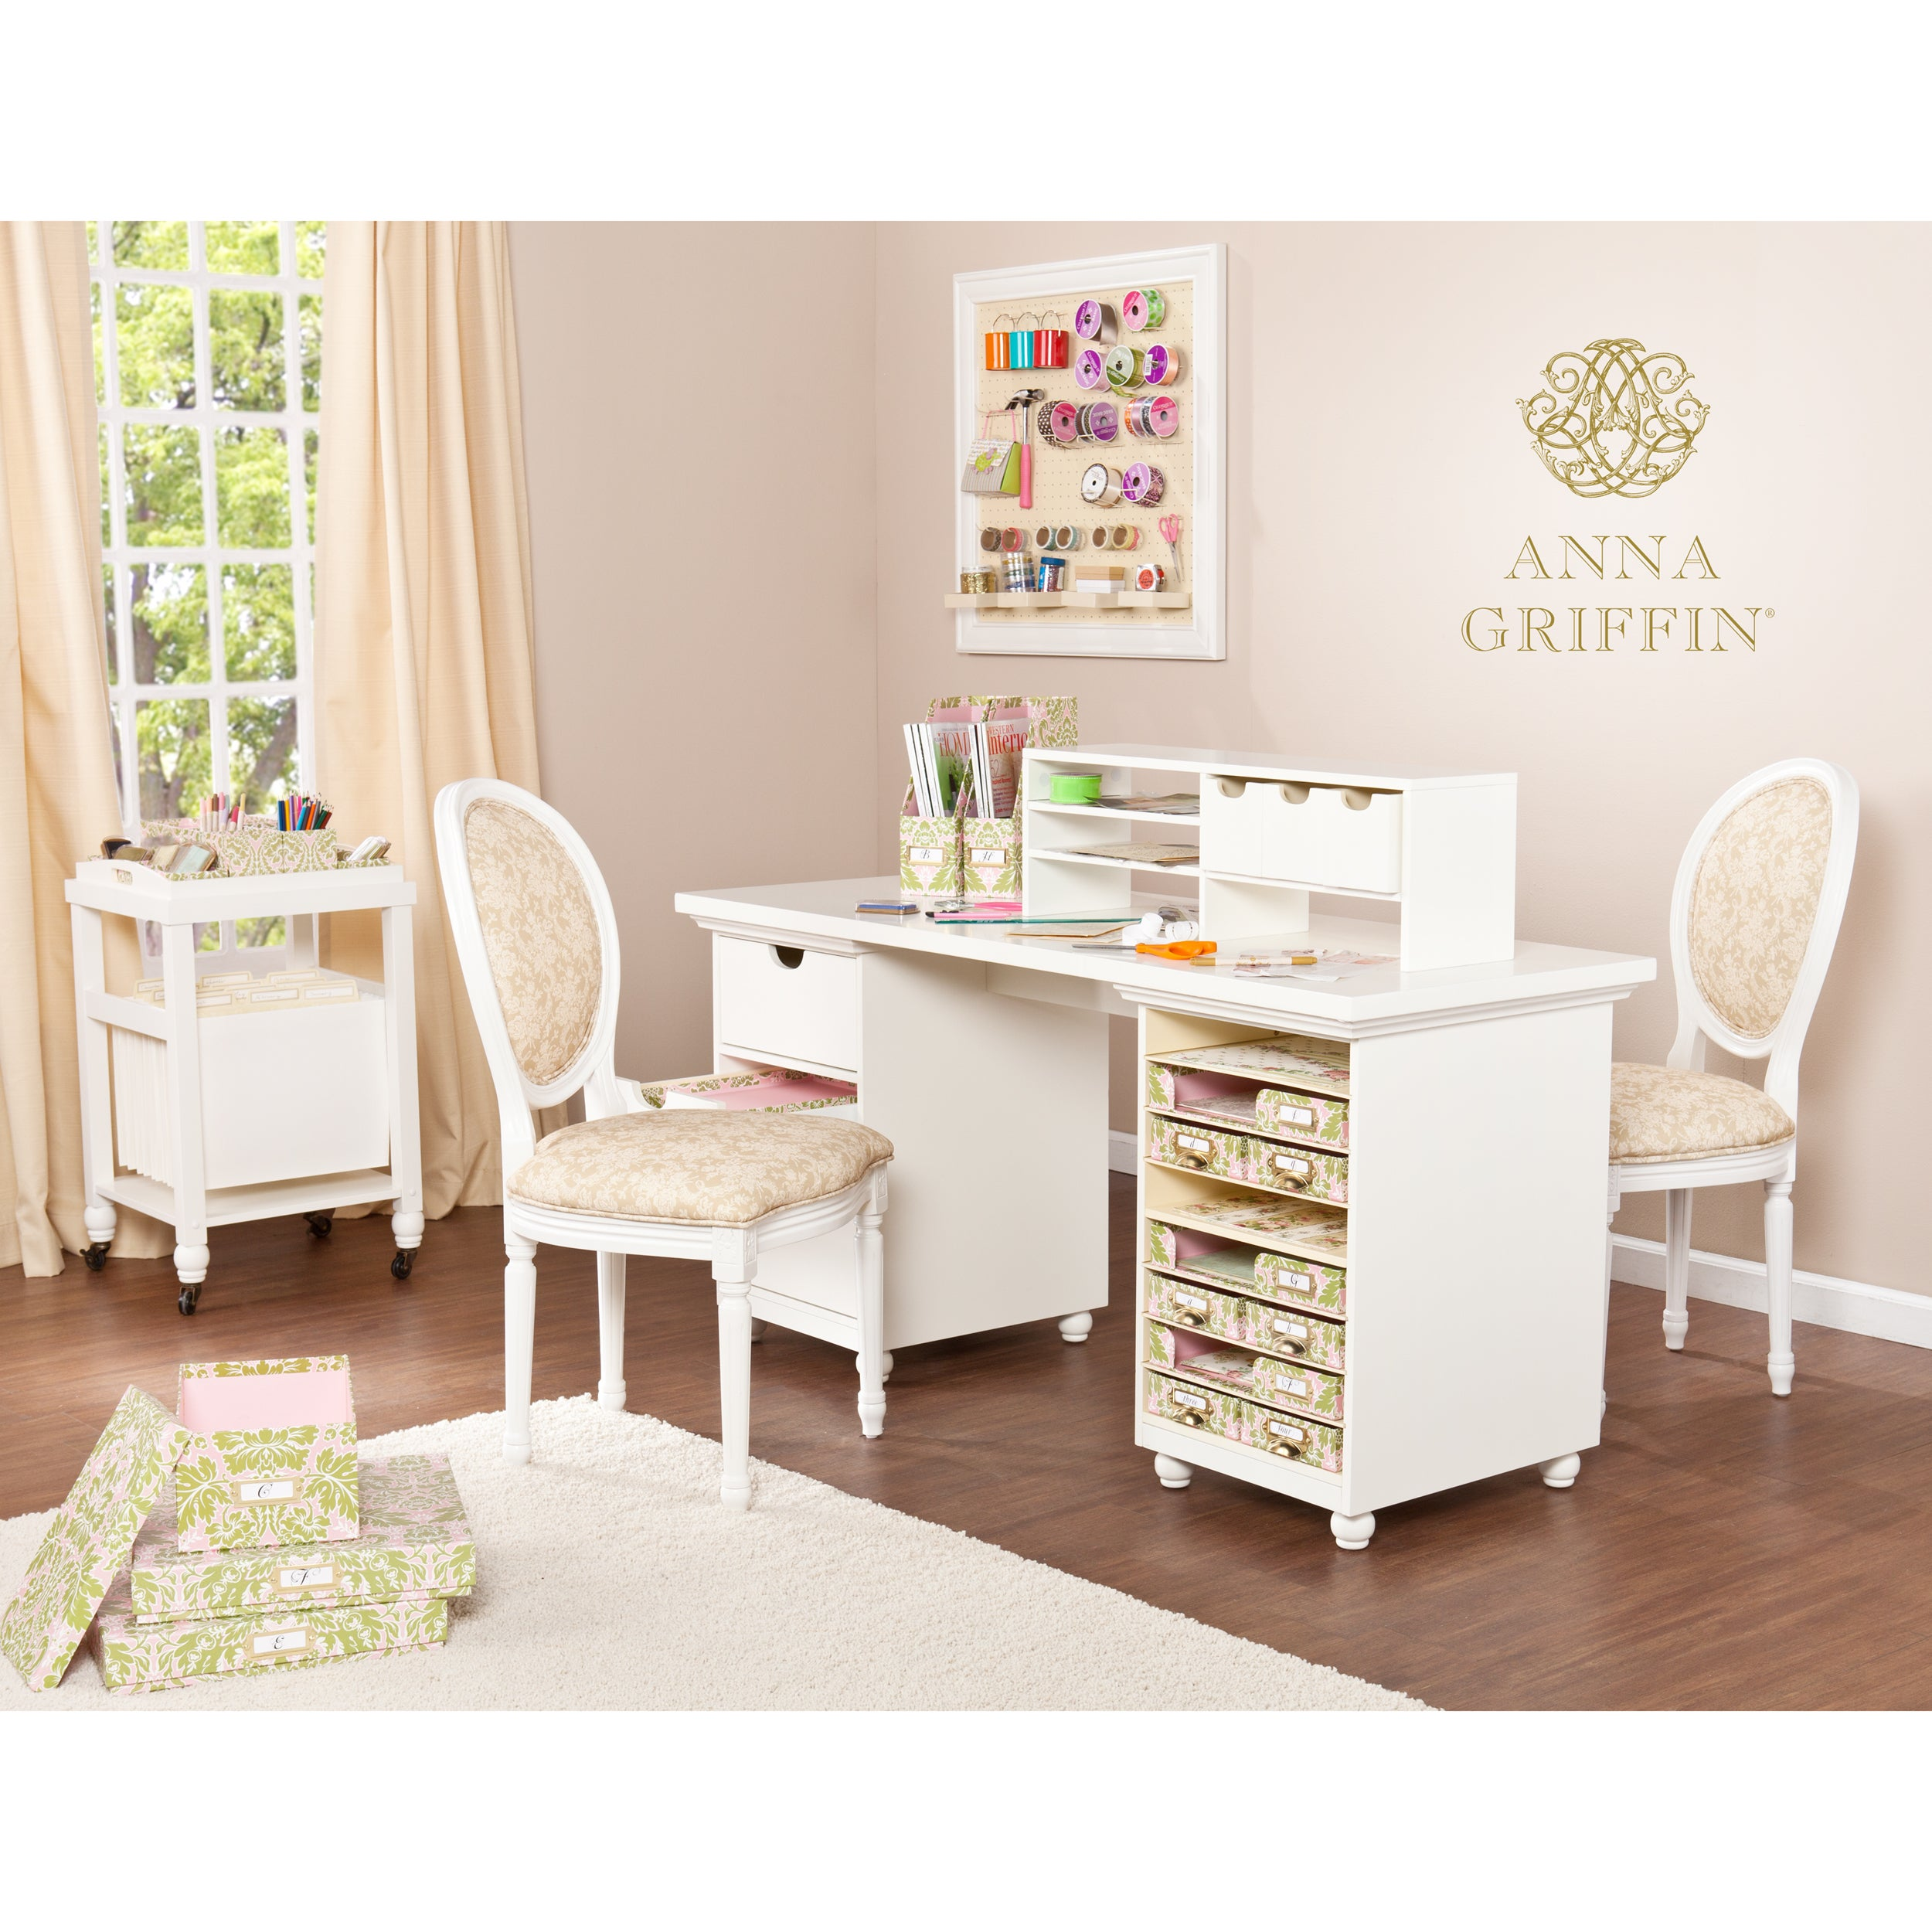 Shop Anna Griffin Craft Room Desktop   Free Shipping Today   Overstock.com    11736990